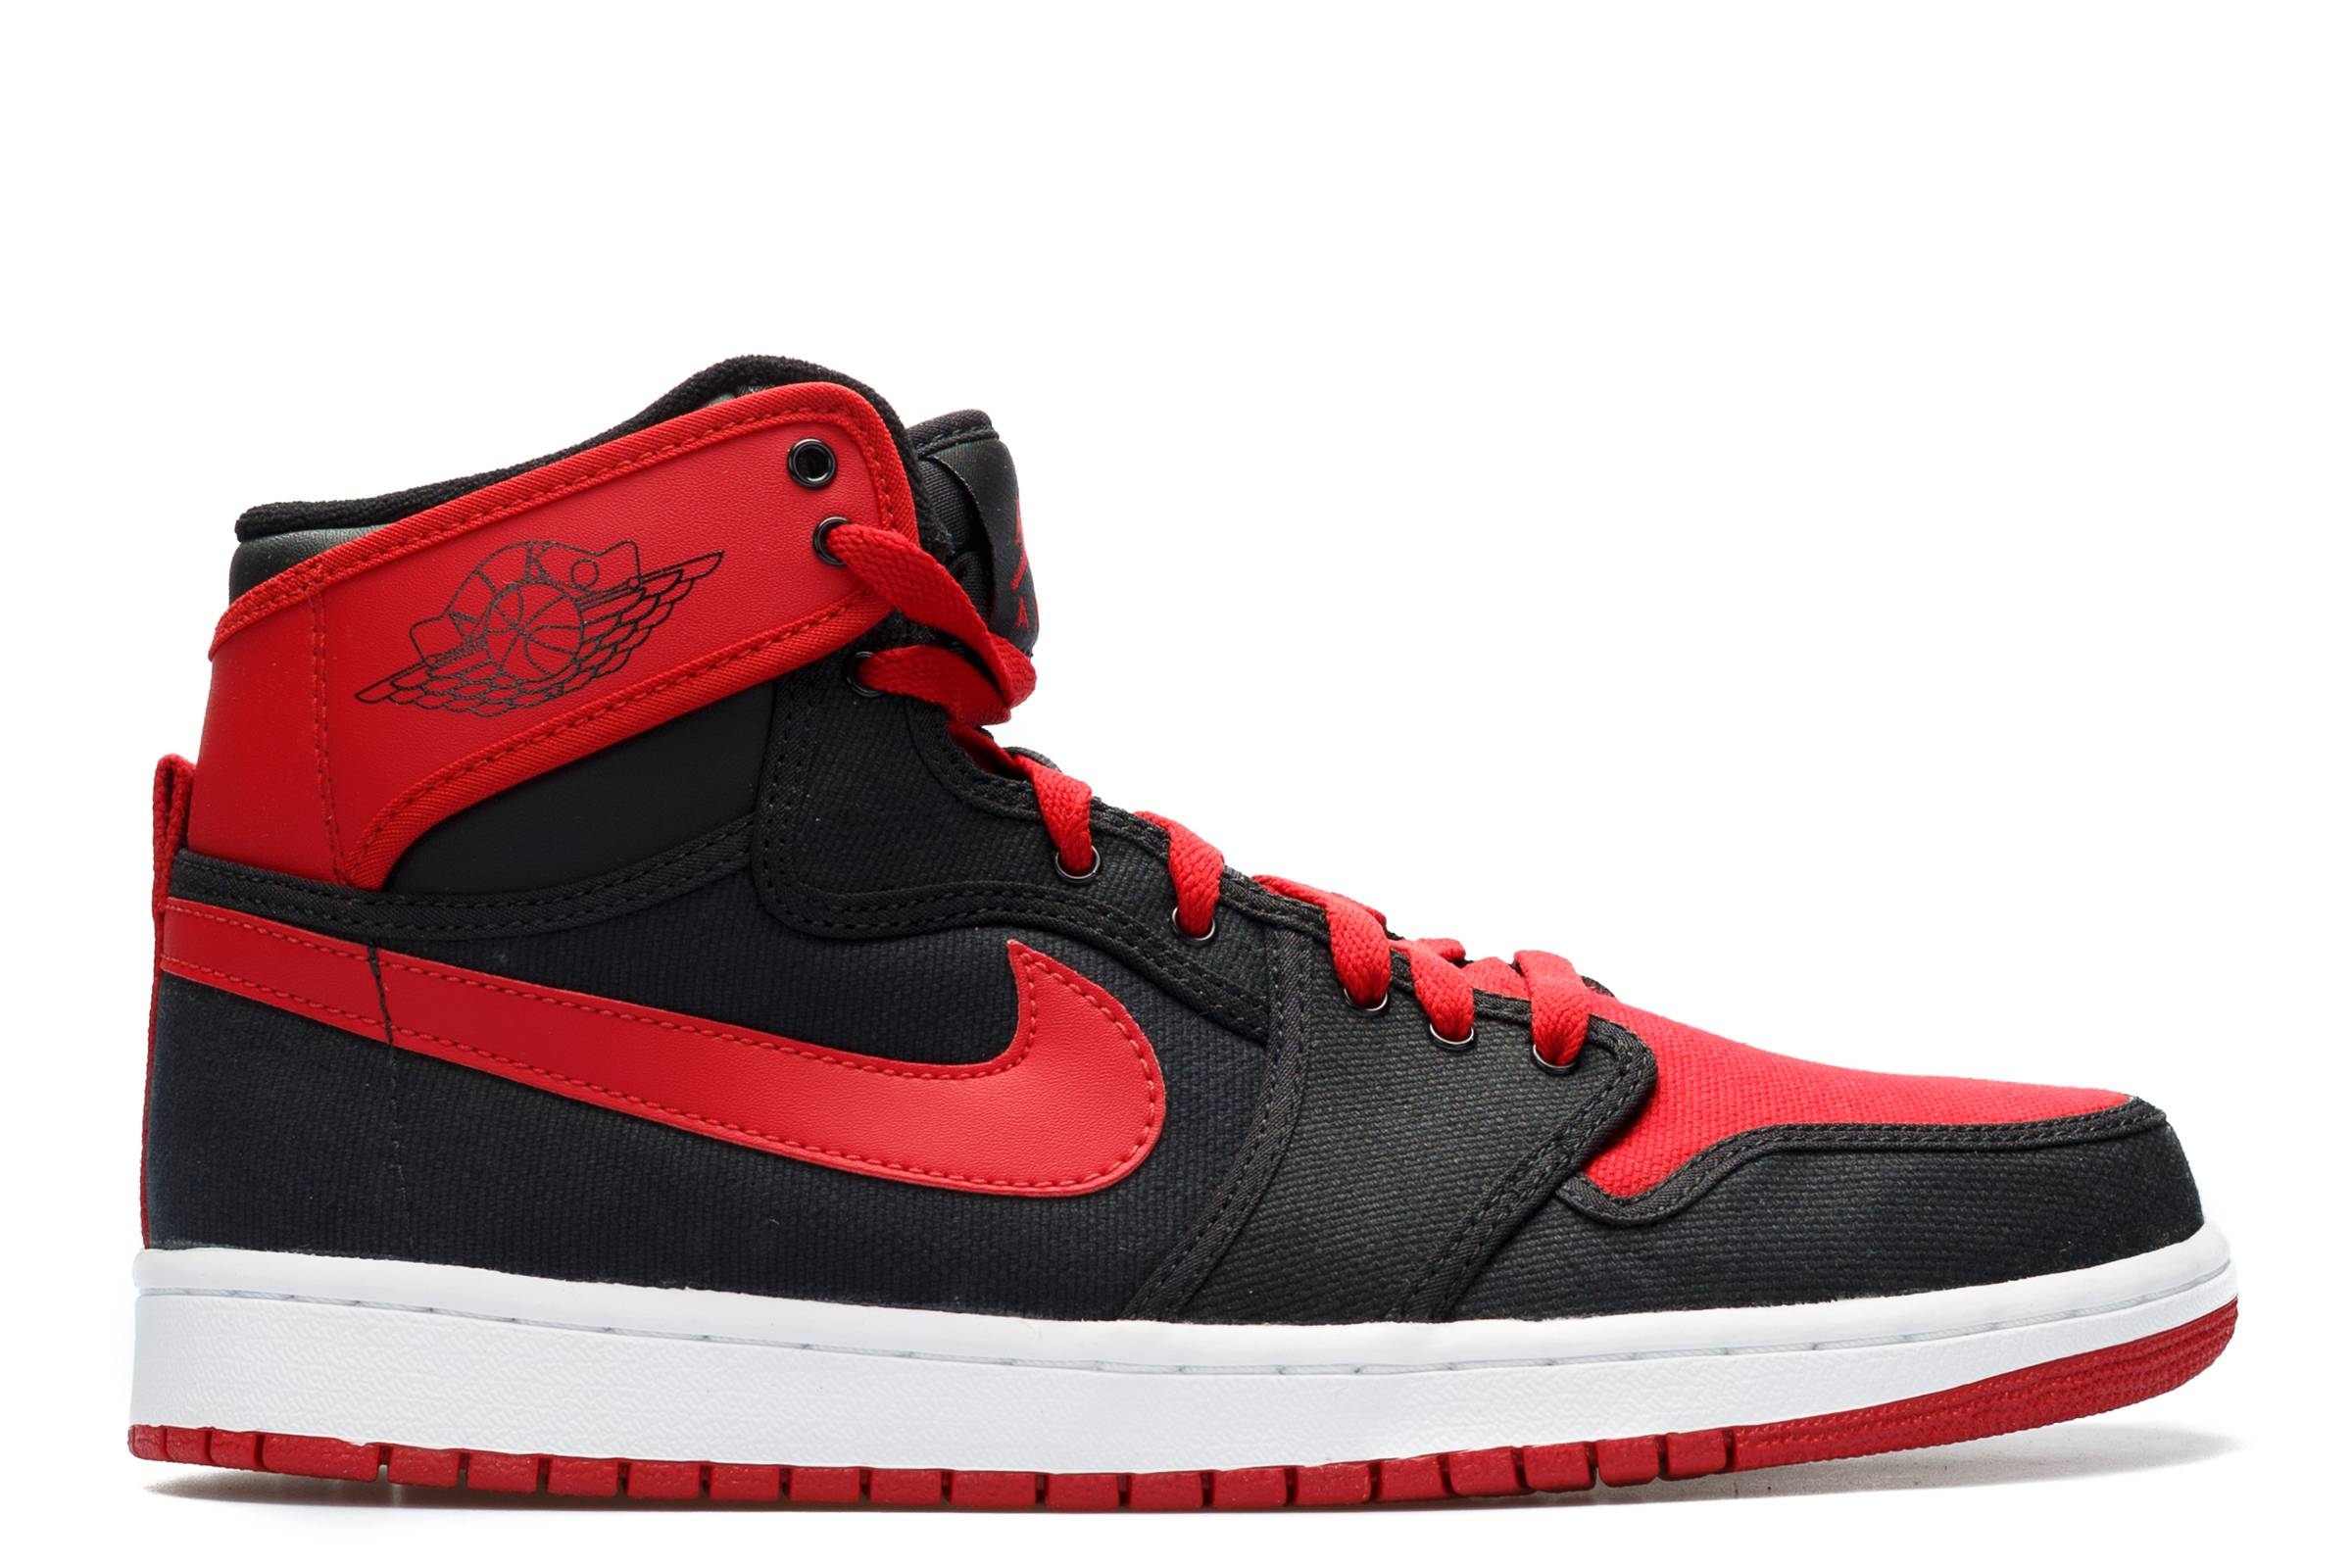 922219302ae The One That Started It All  A History of the Jordan 1 - Jordan 1 ...